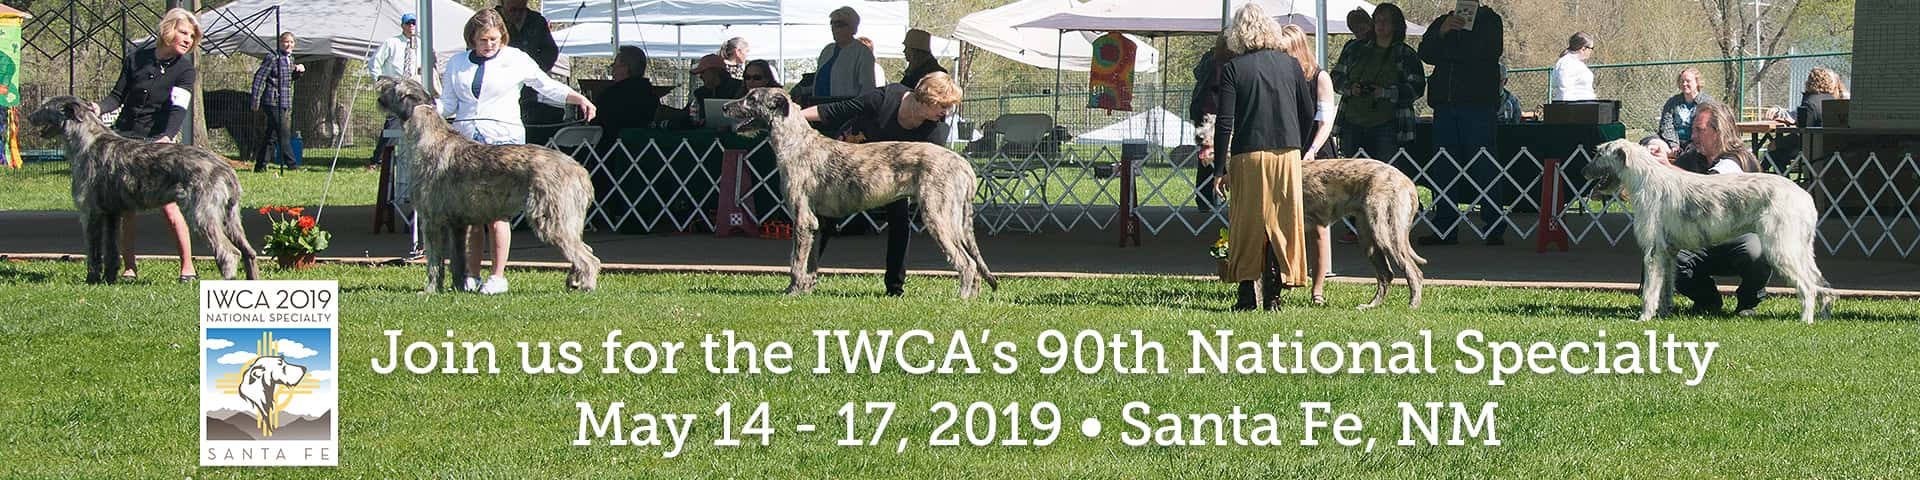 Join us for the IWCA's 90th National Specialty - May 14-17, 2019 - Santa Fe, NM